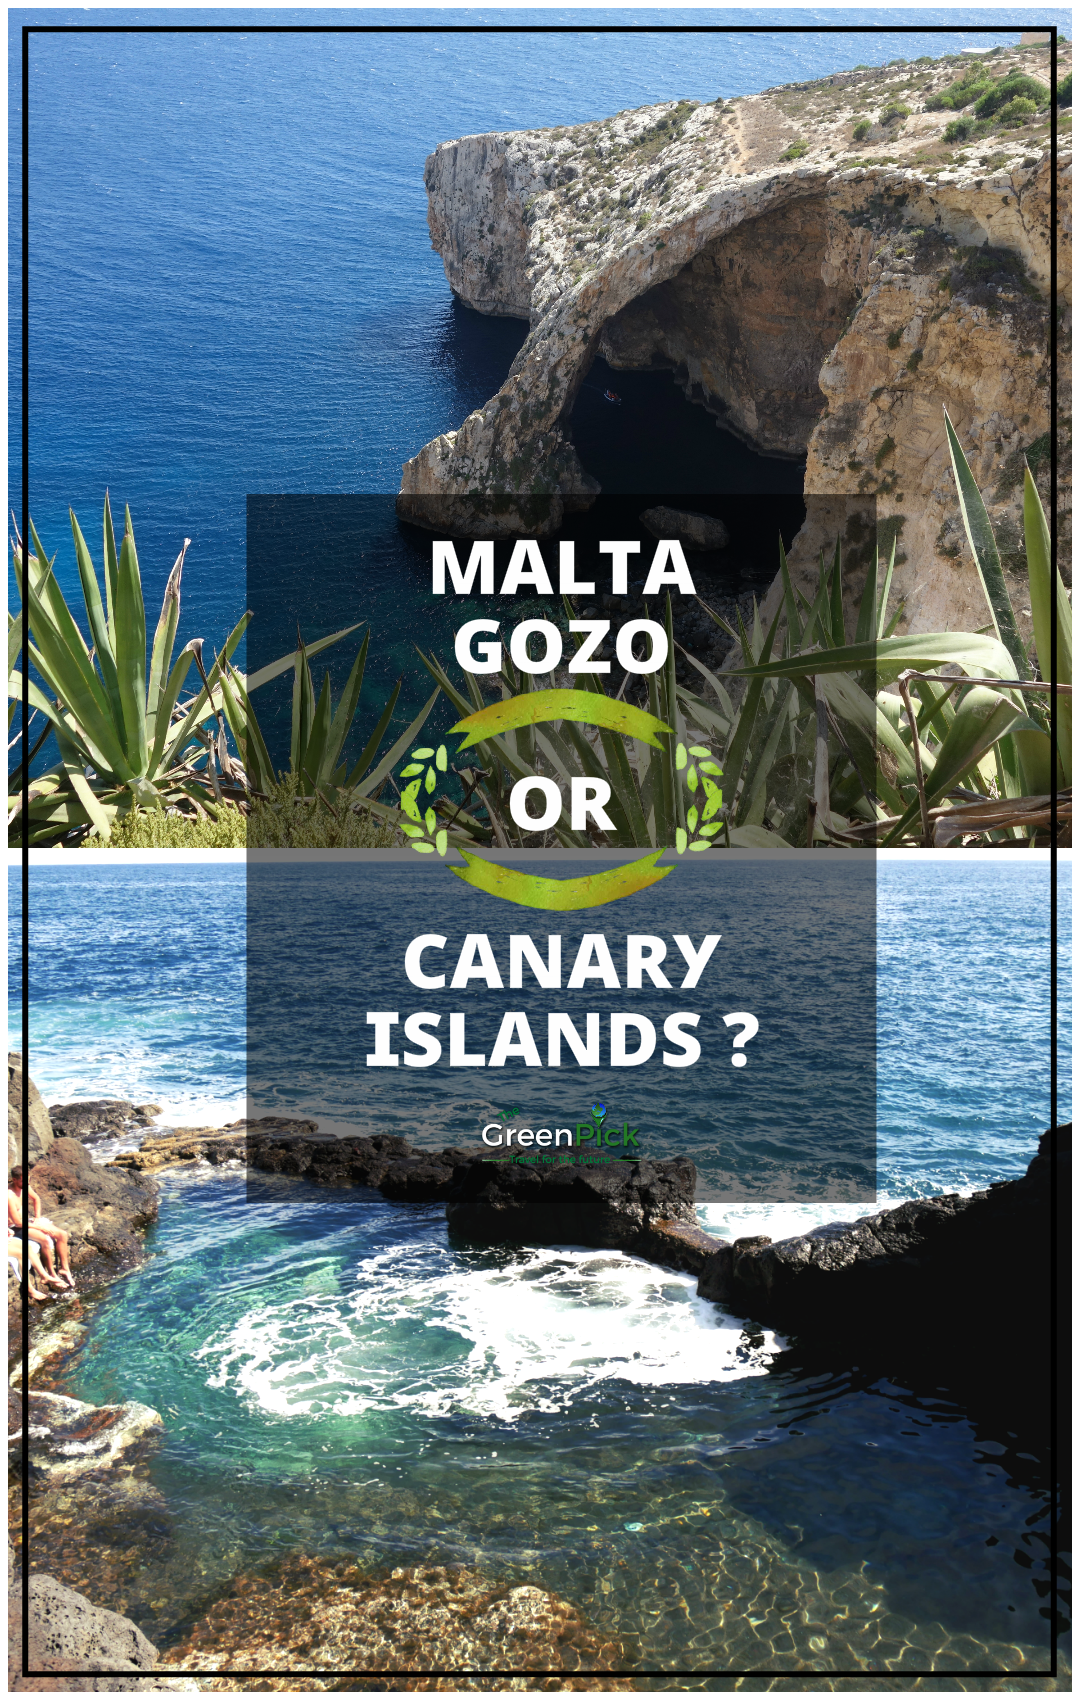 where to go malta gozo vs canaries tenerife la palma what to choose malta or canaries